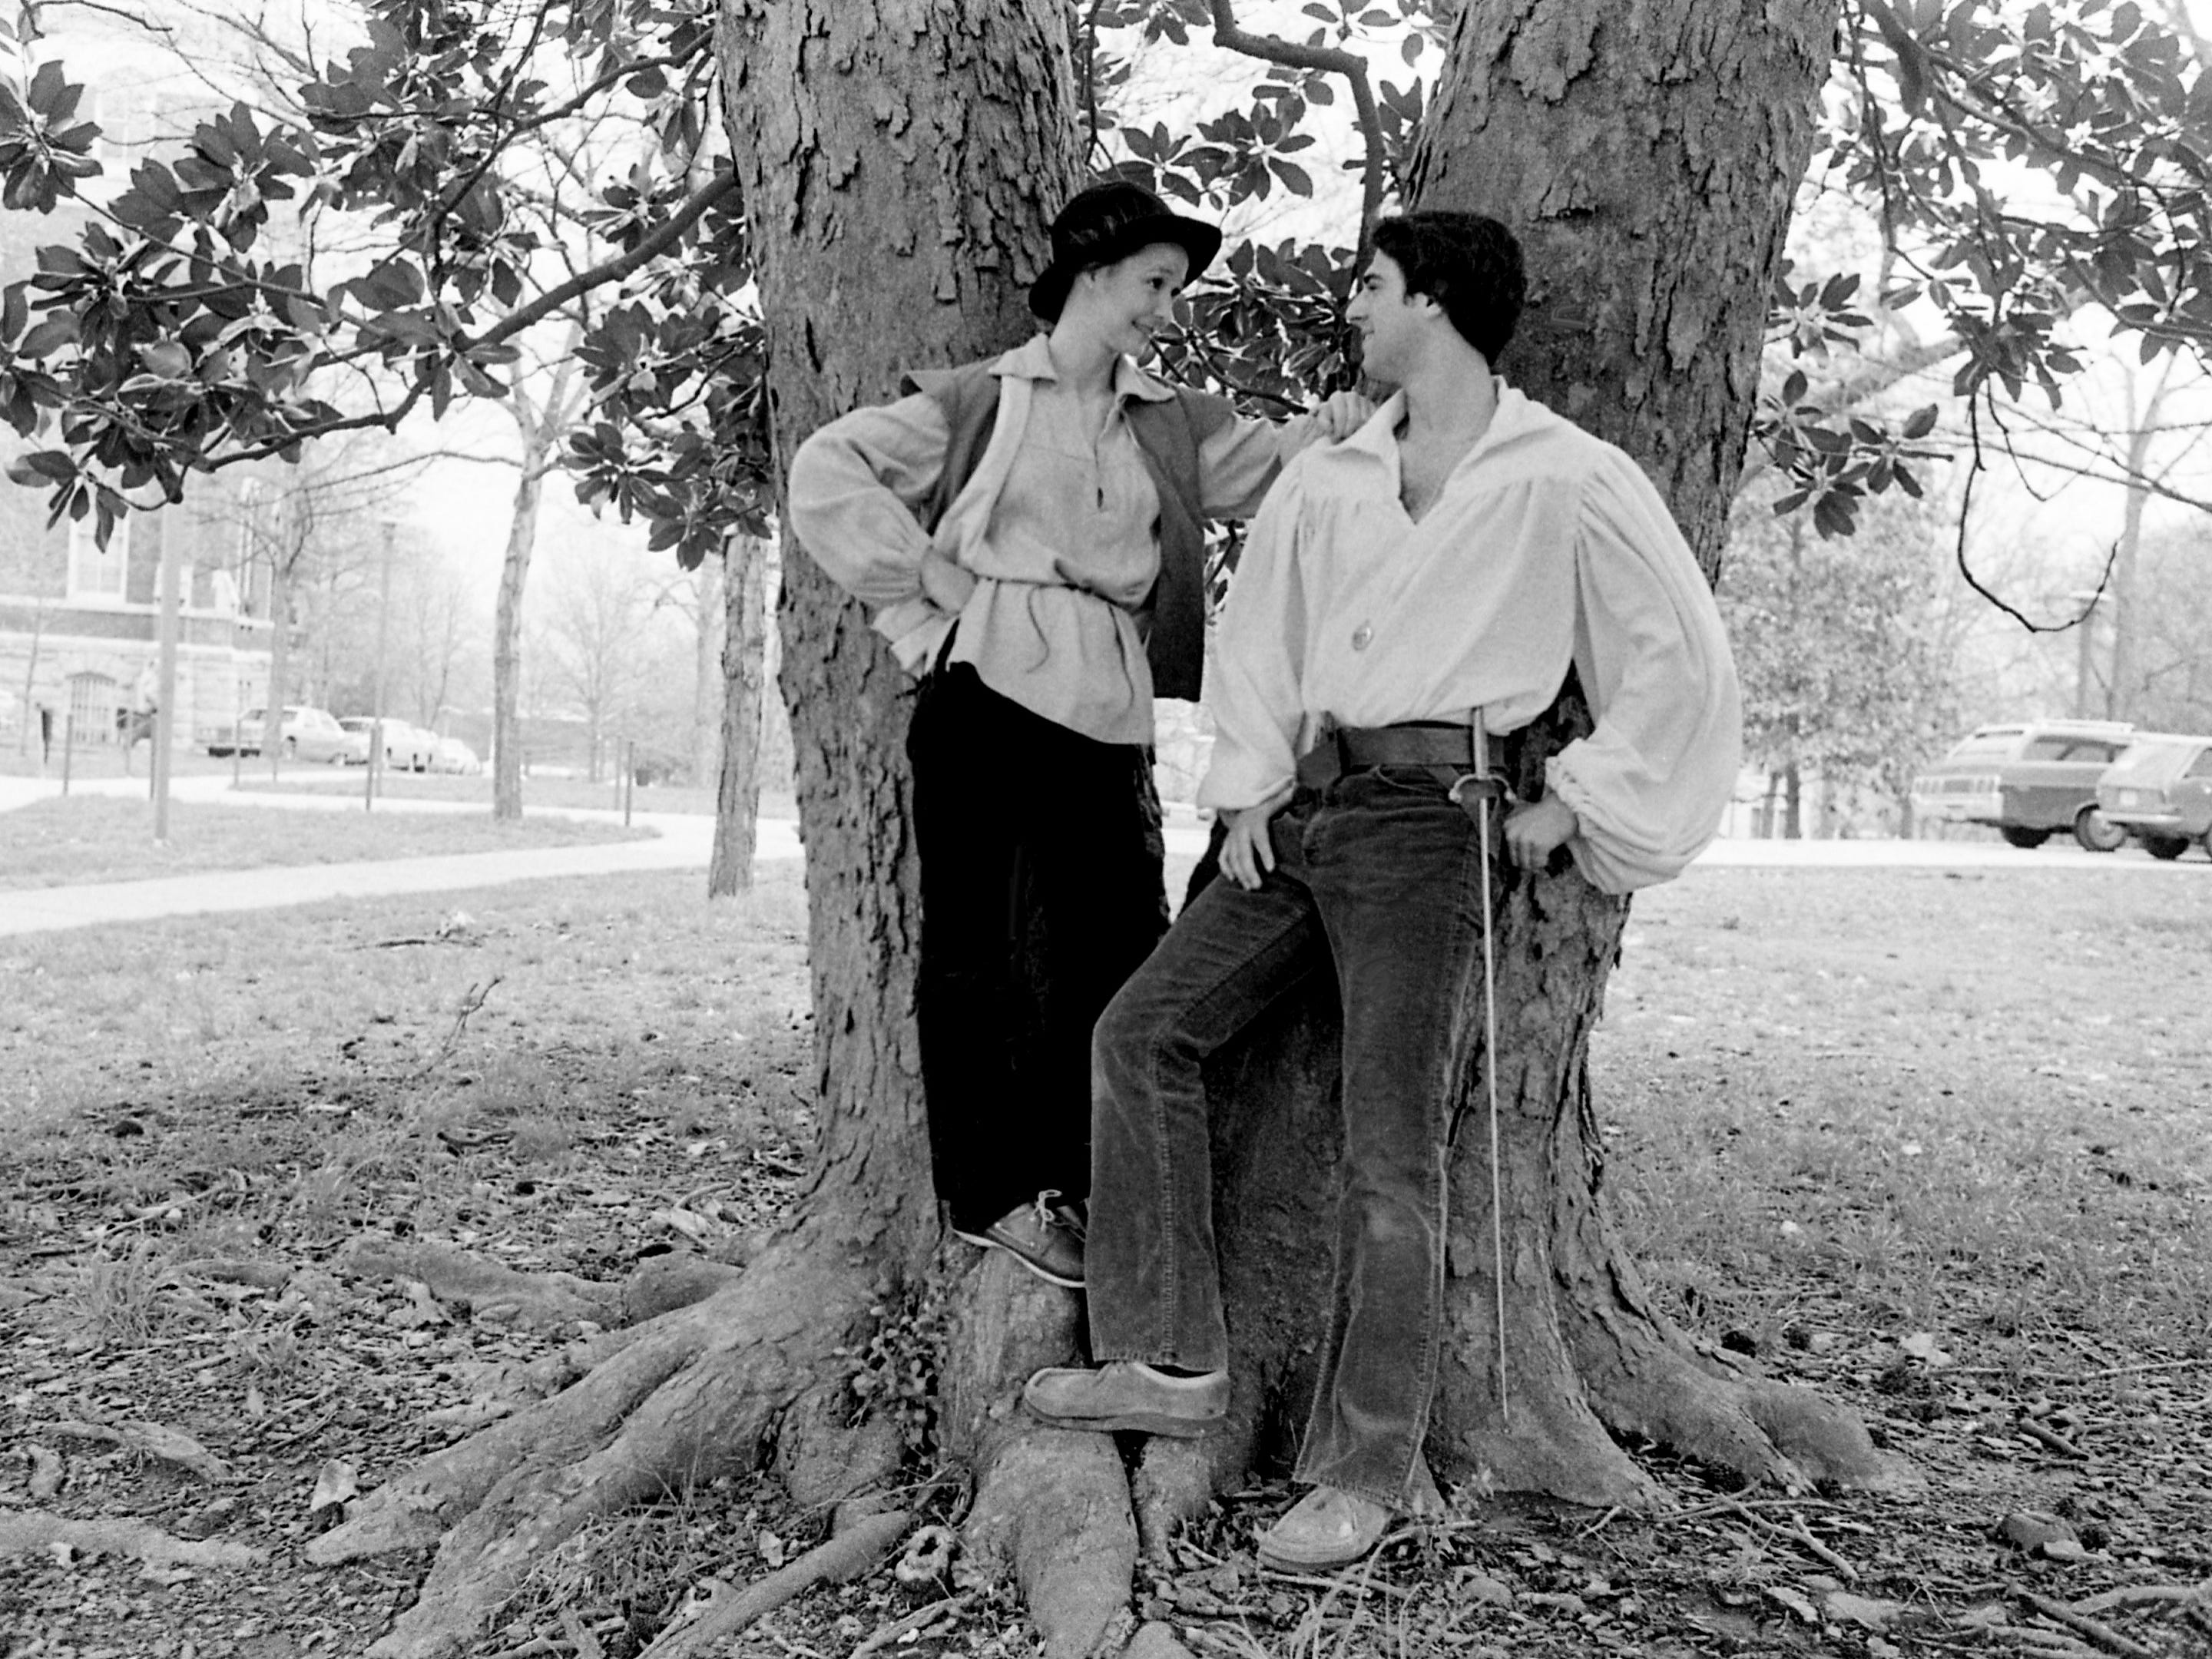 """Sally Hubbard, left, and Alex Stuhl, who play Rosalind and Orlando in Shakespeare's """"As You Like It"""" for the Vanderbilt University Theater, pose on April 4, 1979, for promotion photo on campus."""